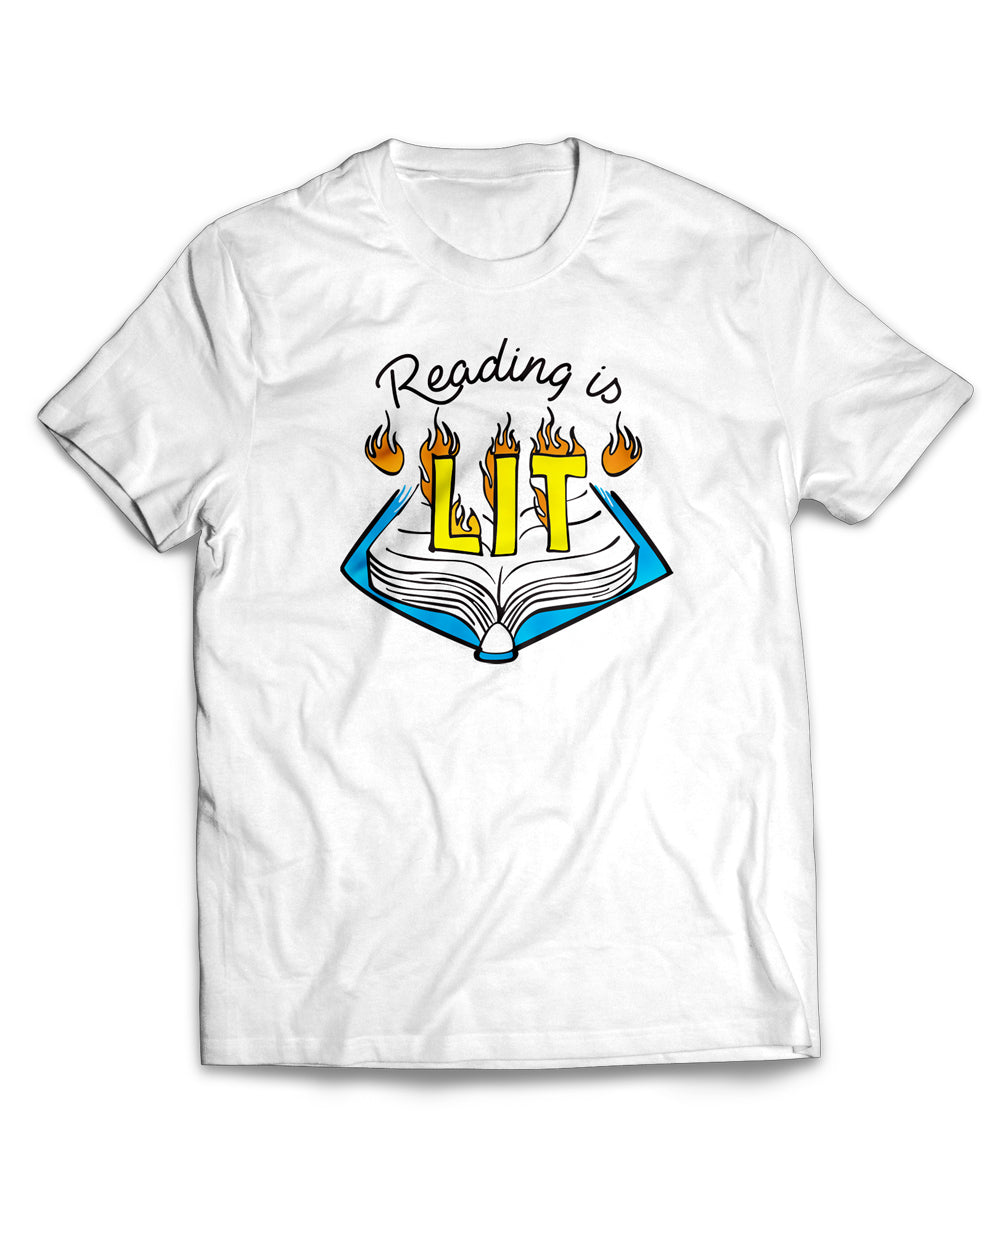 Reading is Lit Make Original White T-Shirt Womens